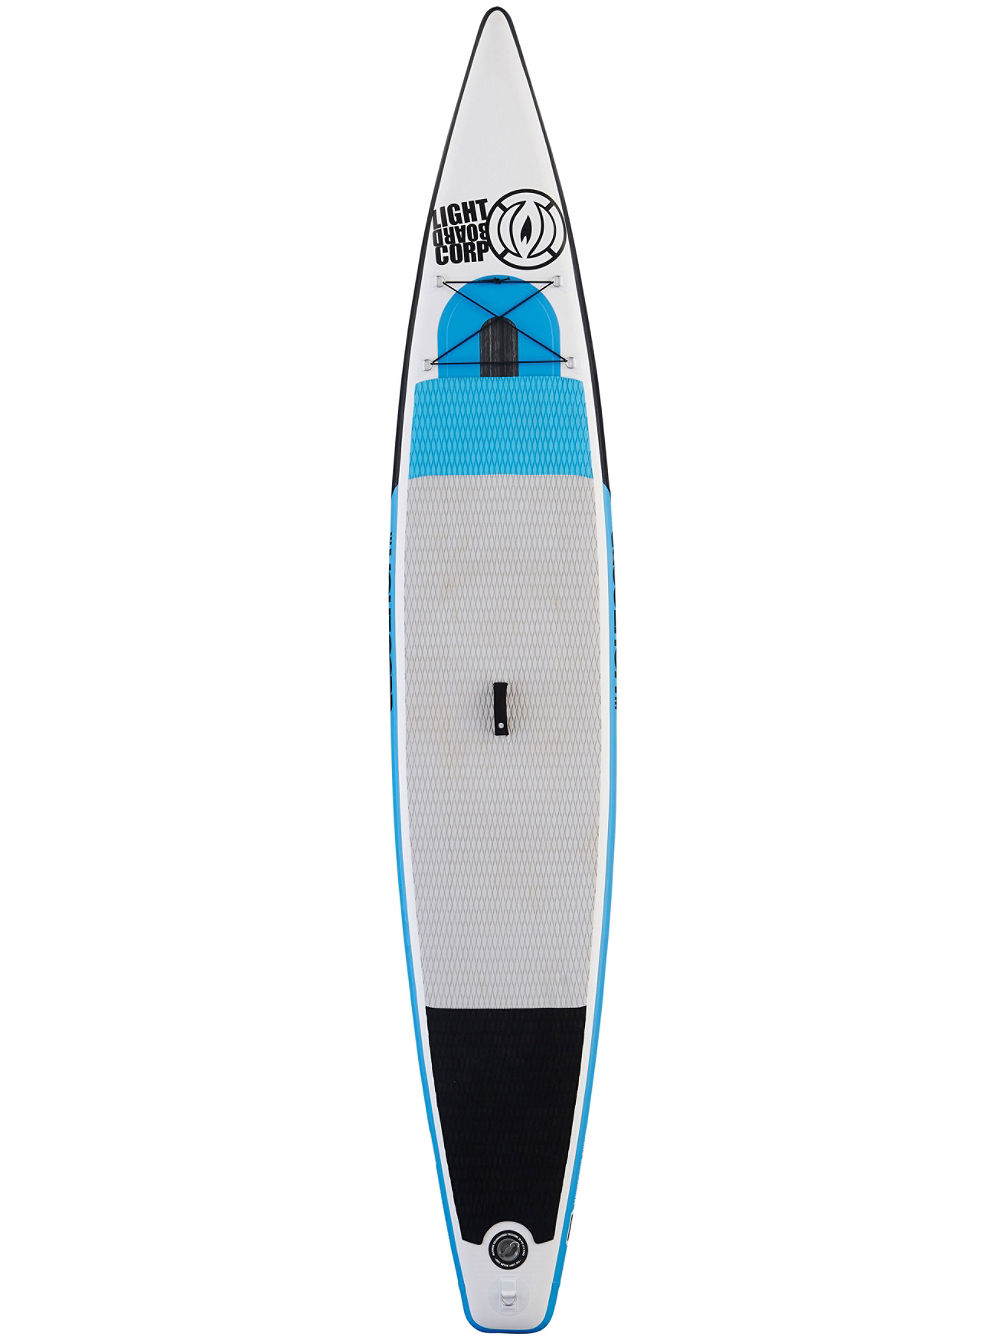 IC Series 14.0 x 26.5 SUP Board